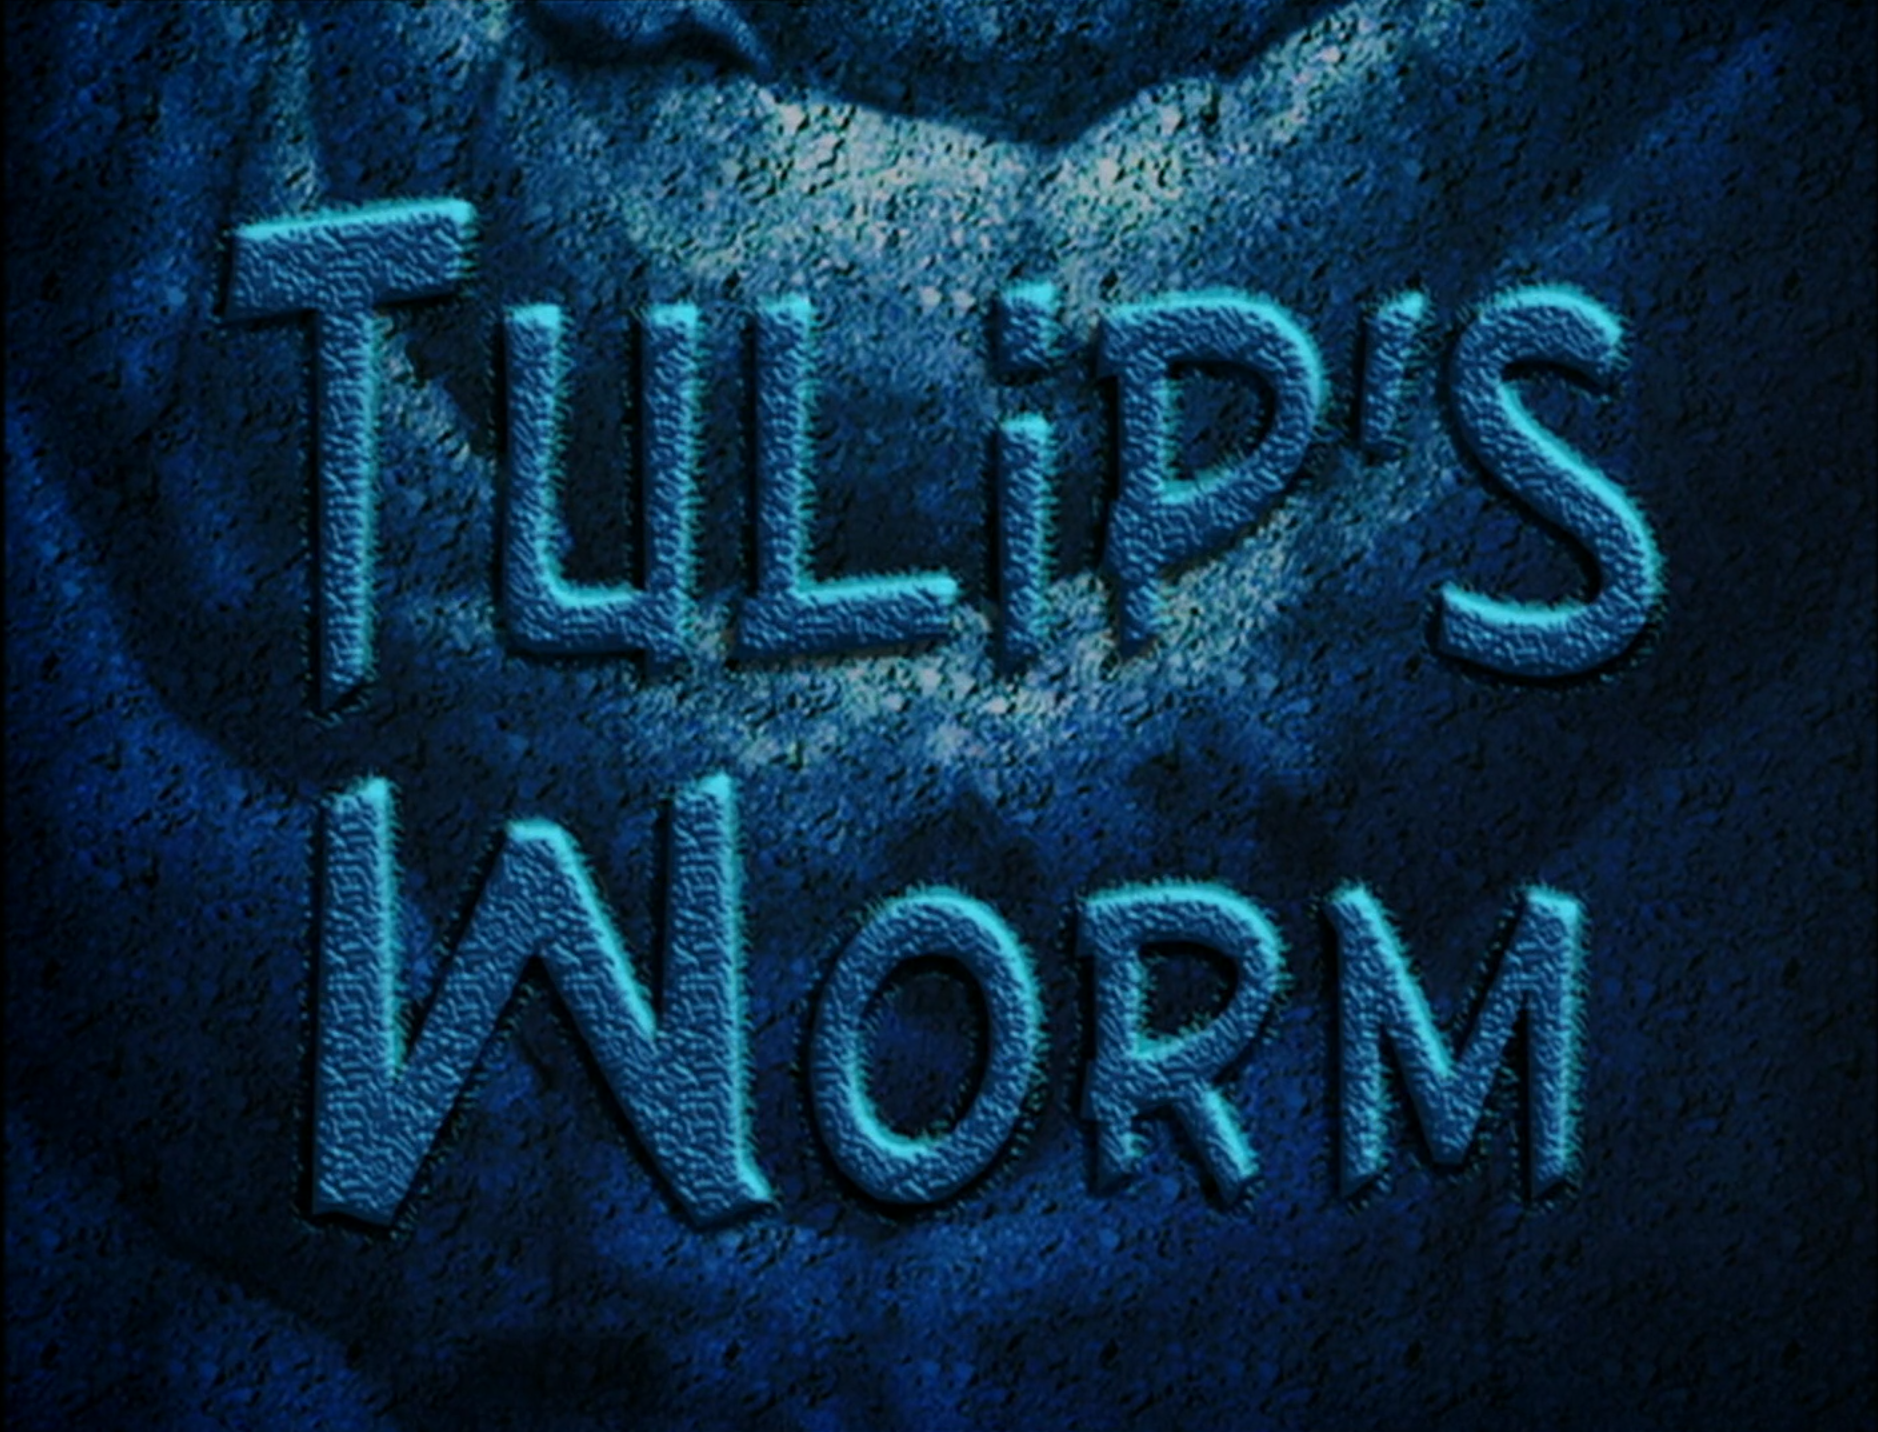 File:Tulips worm.png